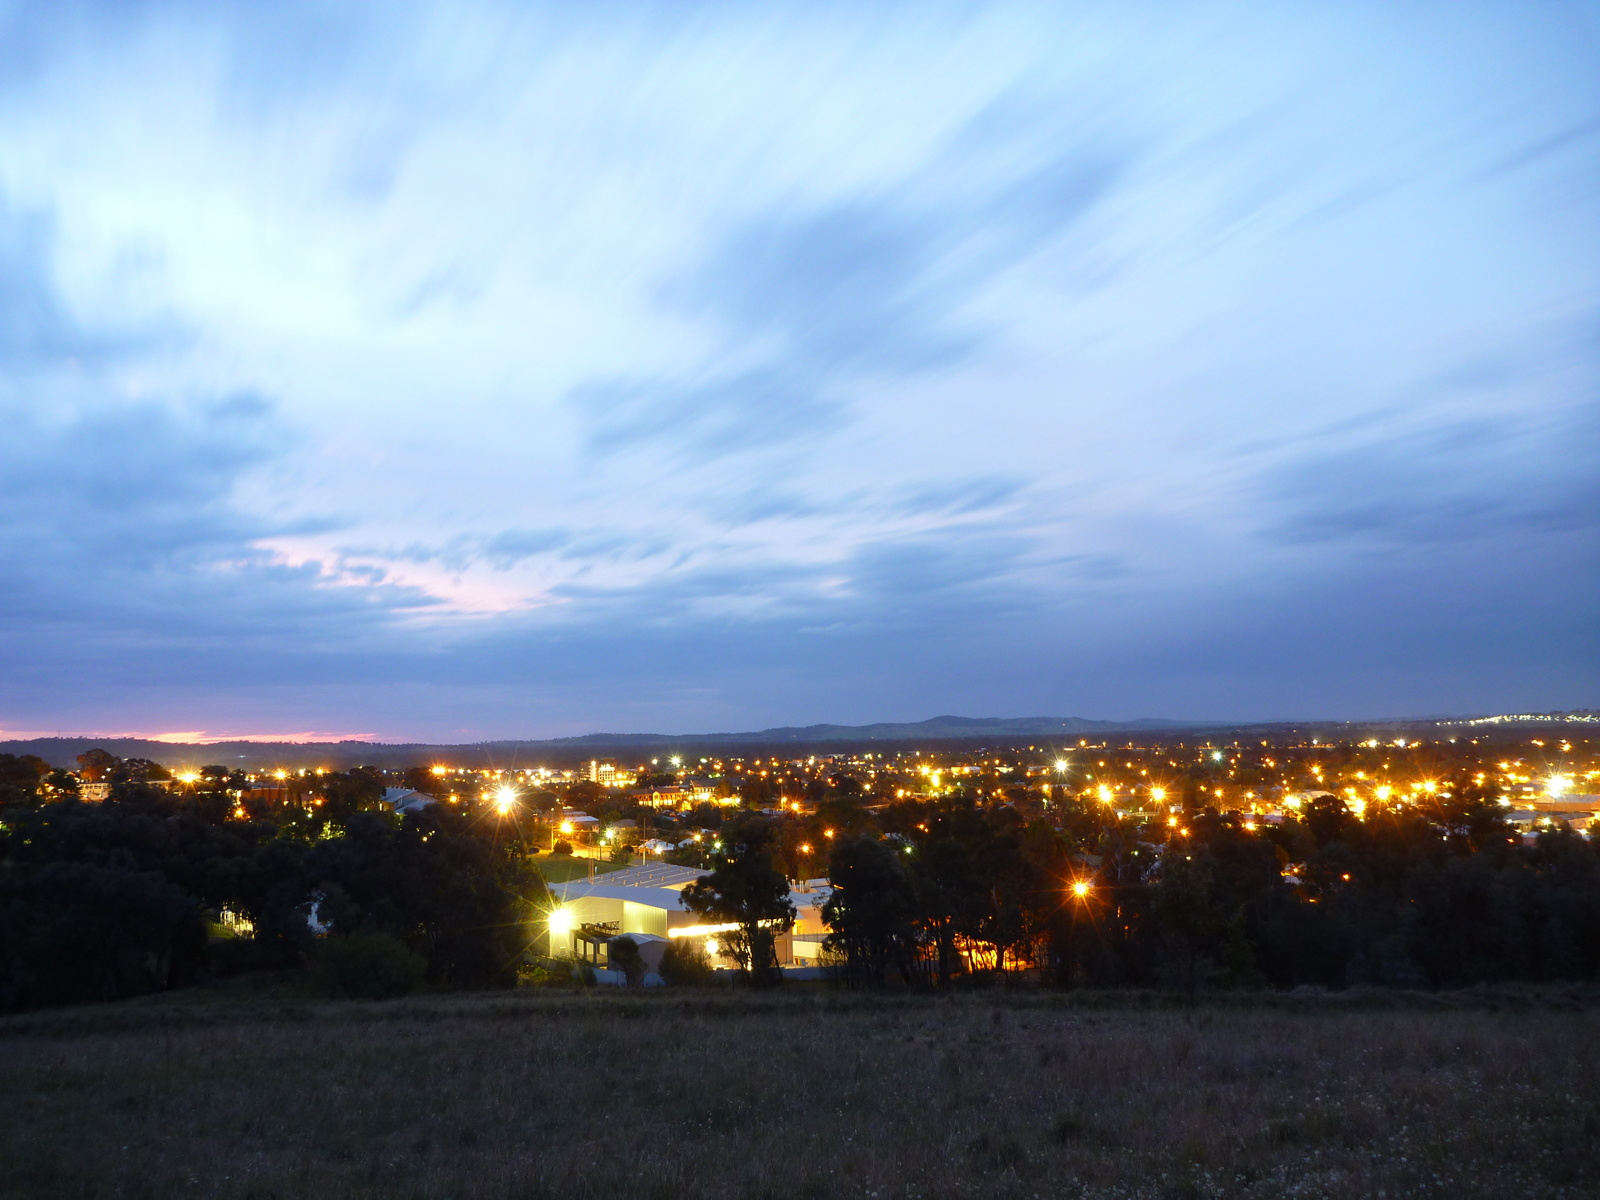 Wagga Wagga at night; lovely lighting and blurred clouds.